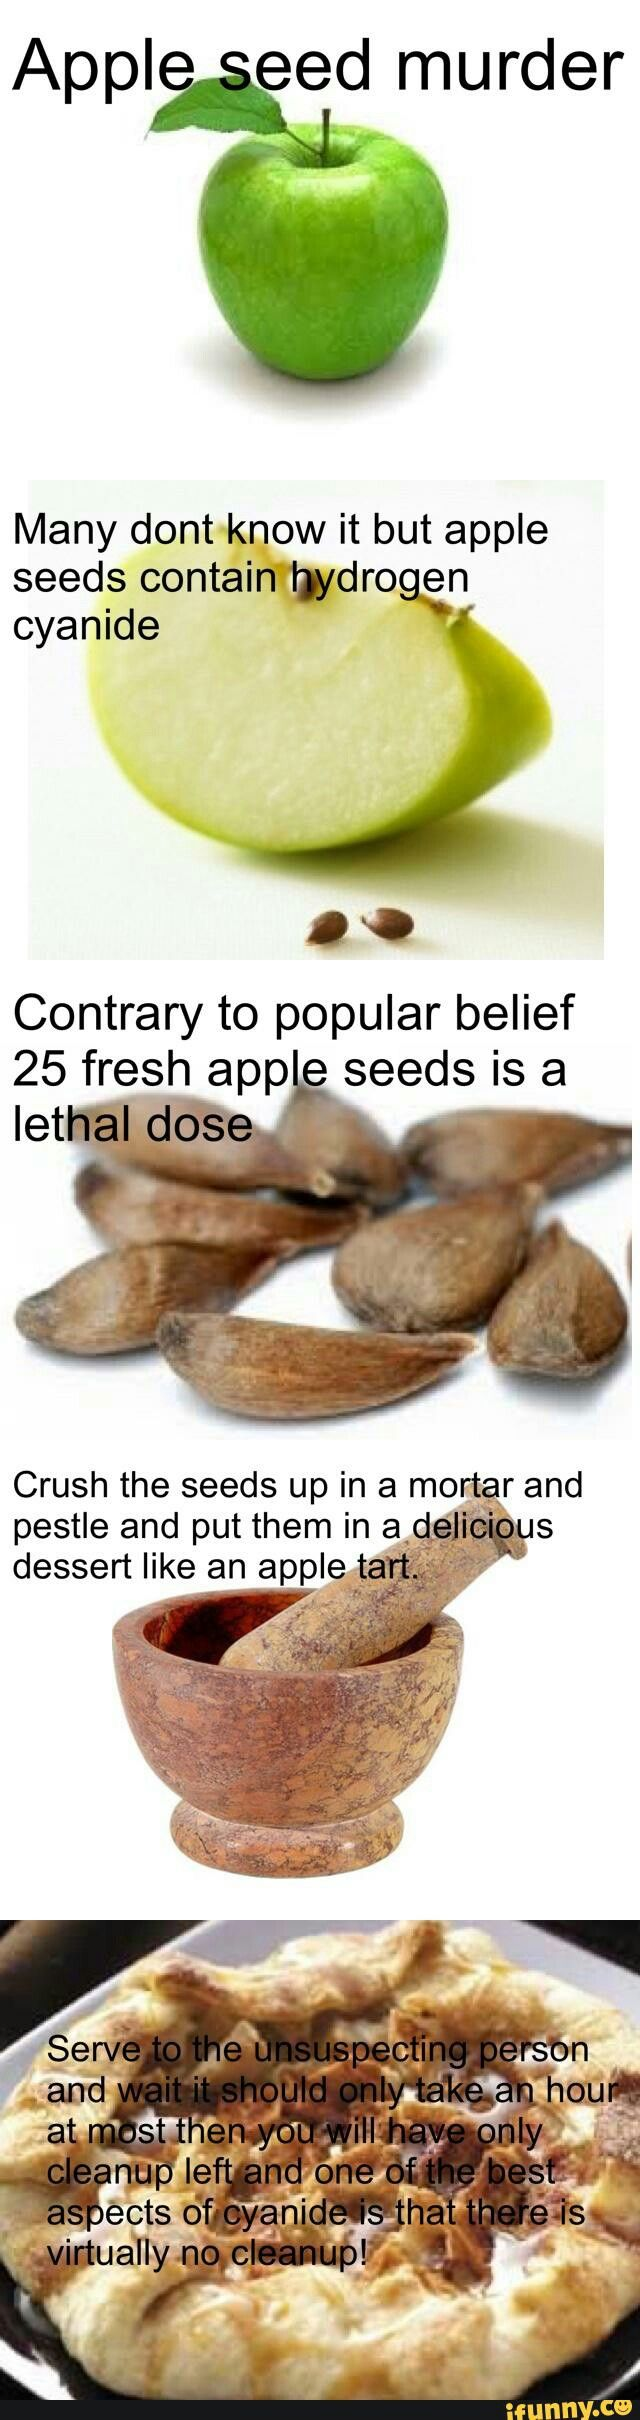 It's probably more trouble than it's worth, but still interesting. I'd suggest cherry pits though, they carry more cyanide and it's easier to buy a bunch of them. For writing purposes.